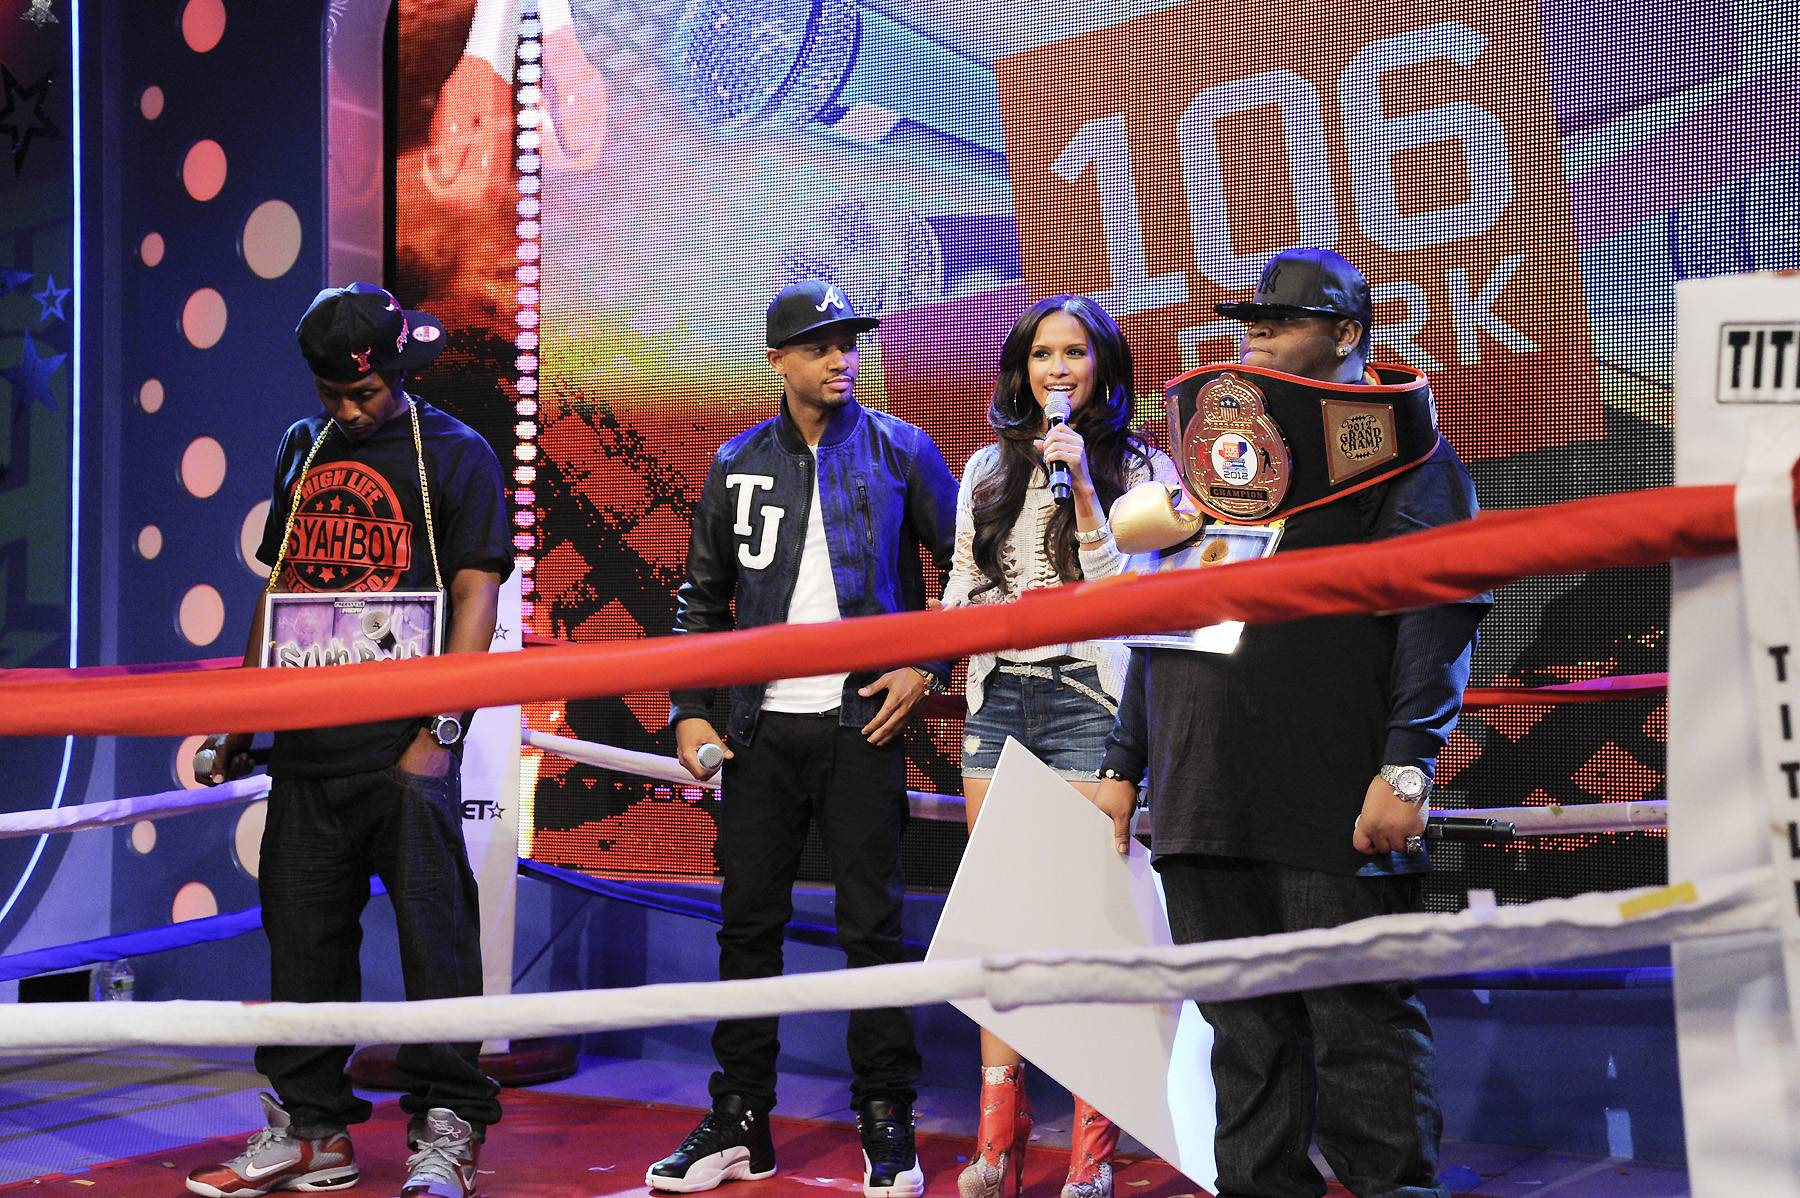 Who Will Take The Win? - Rocsi Diaz and Terrence J speak to Freestyle Friday champion Relly at 106 & Park, April 6, 2012. (photo: John Ricard / BET)